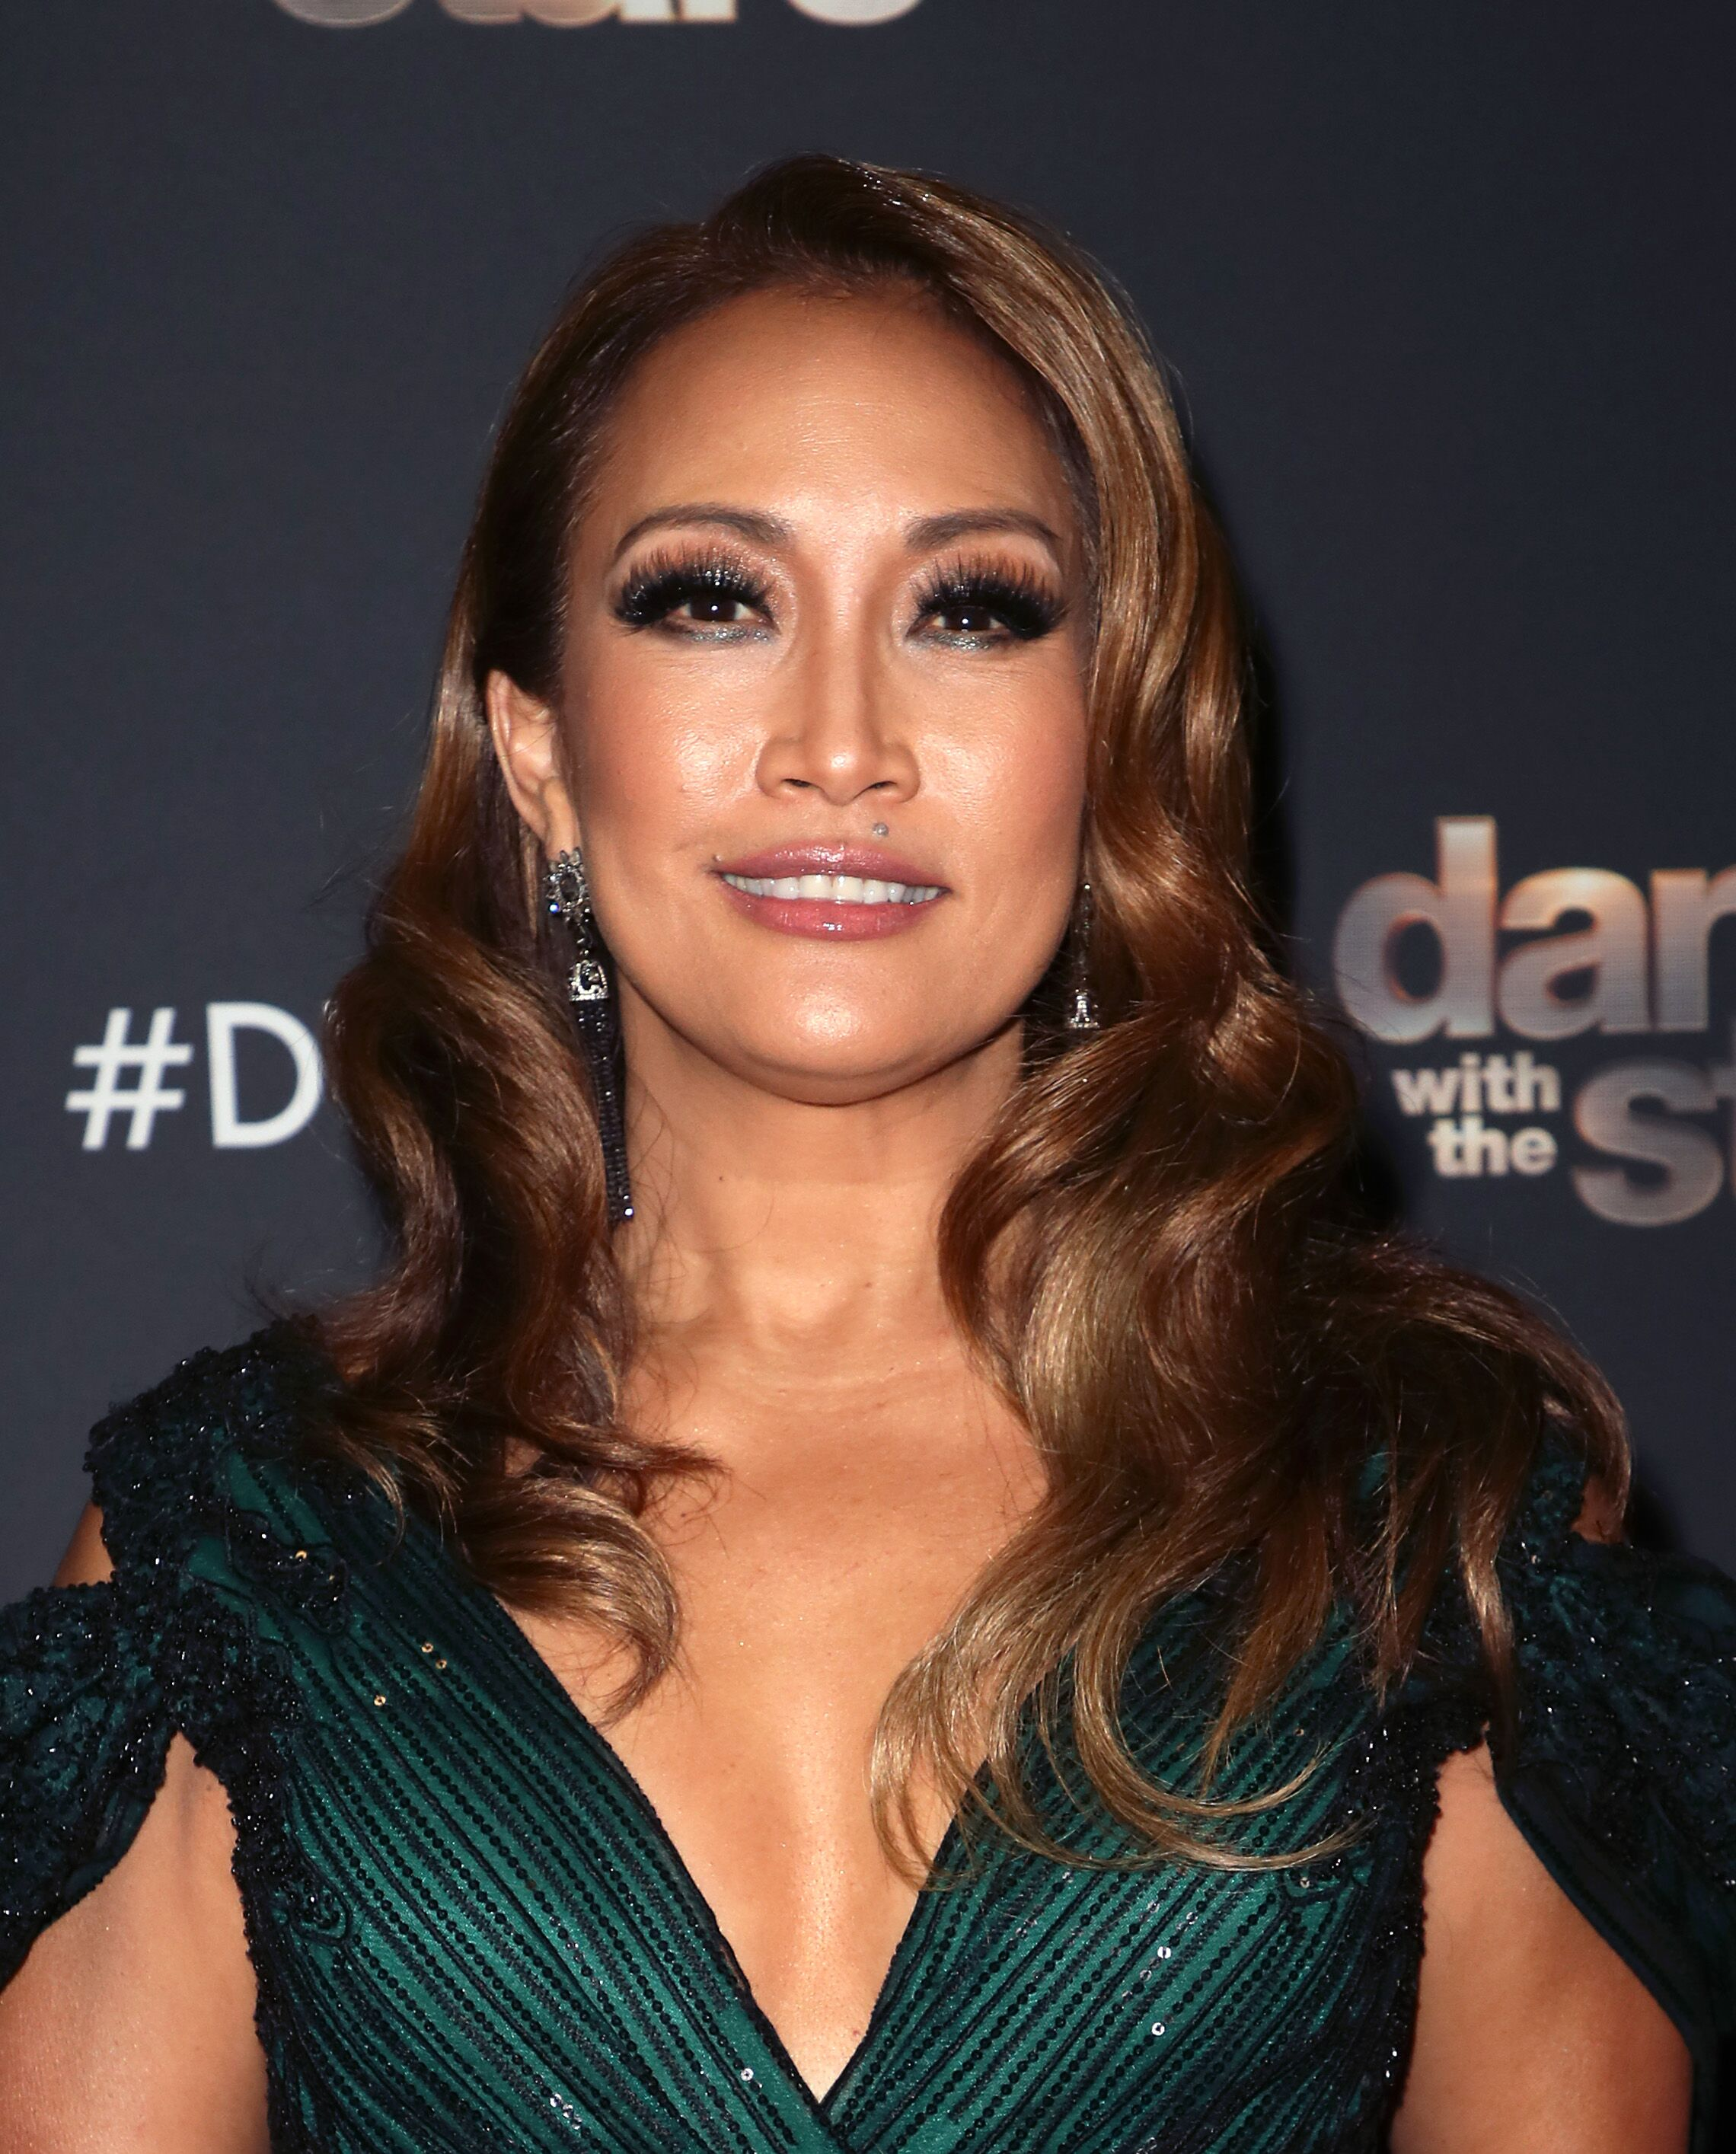 """Carrie Ann Inaba poses at """"Dancing with the Stars"""" Season 28 at CBS Television City on October 14, 2019 in Los Angeles, California 